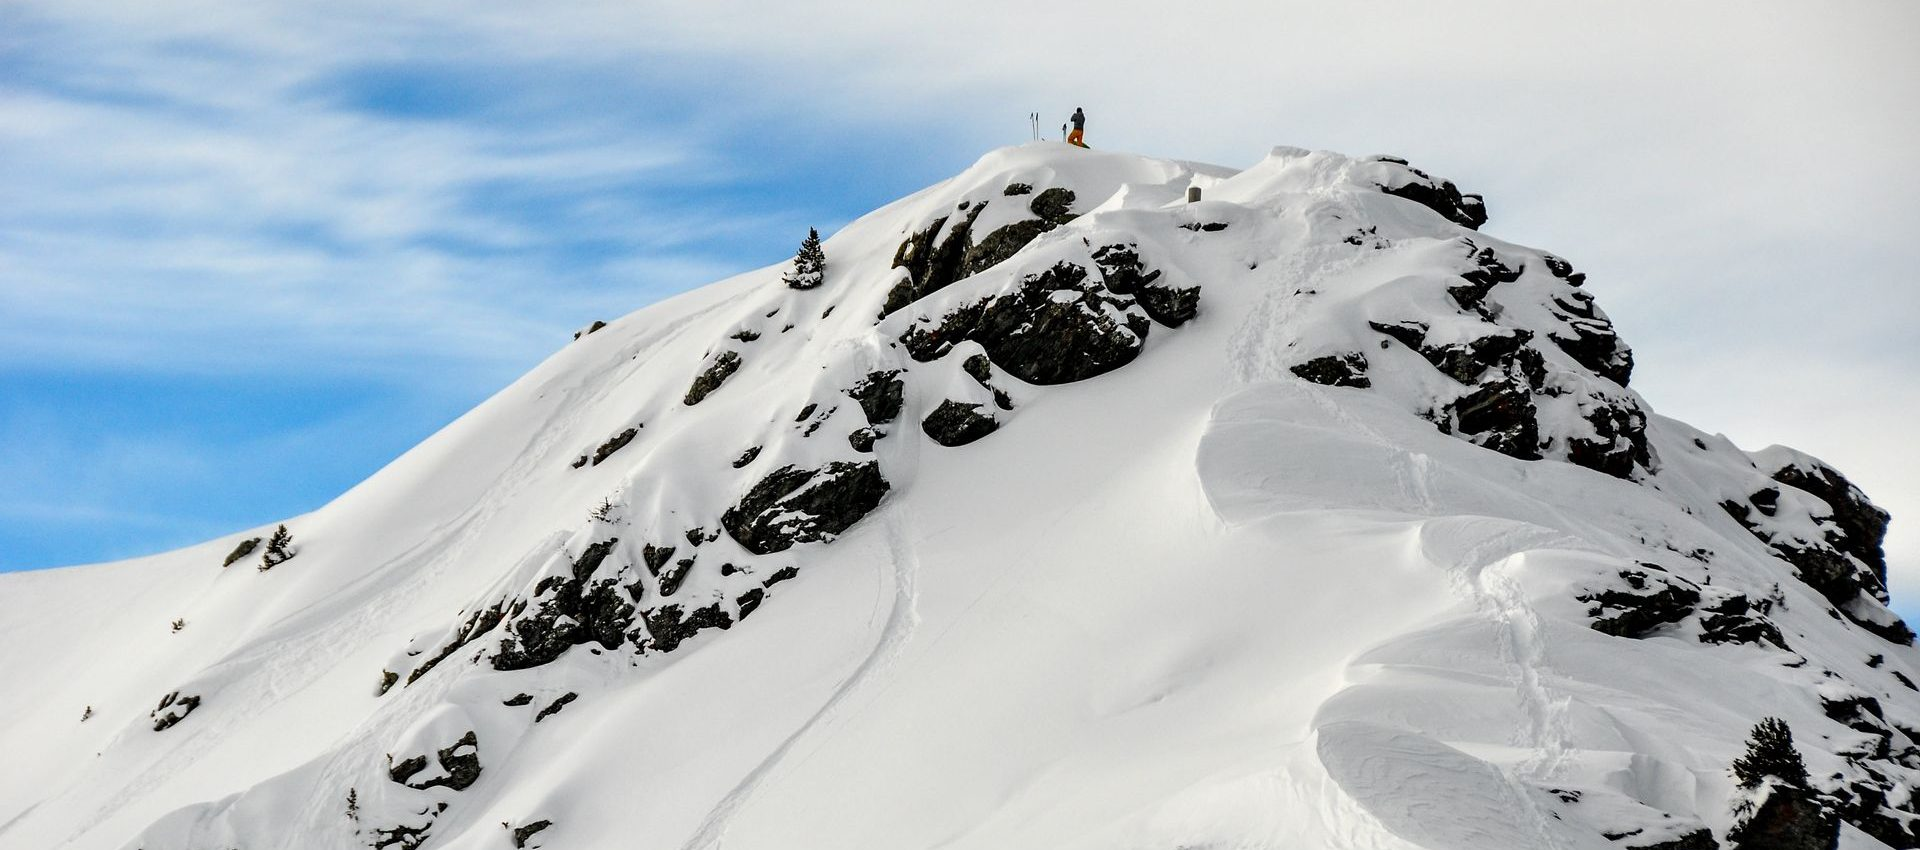 A small hike was needed for this creative line in Nendaz. The second contender of our group is dropping soon.